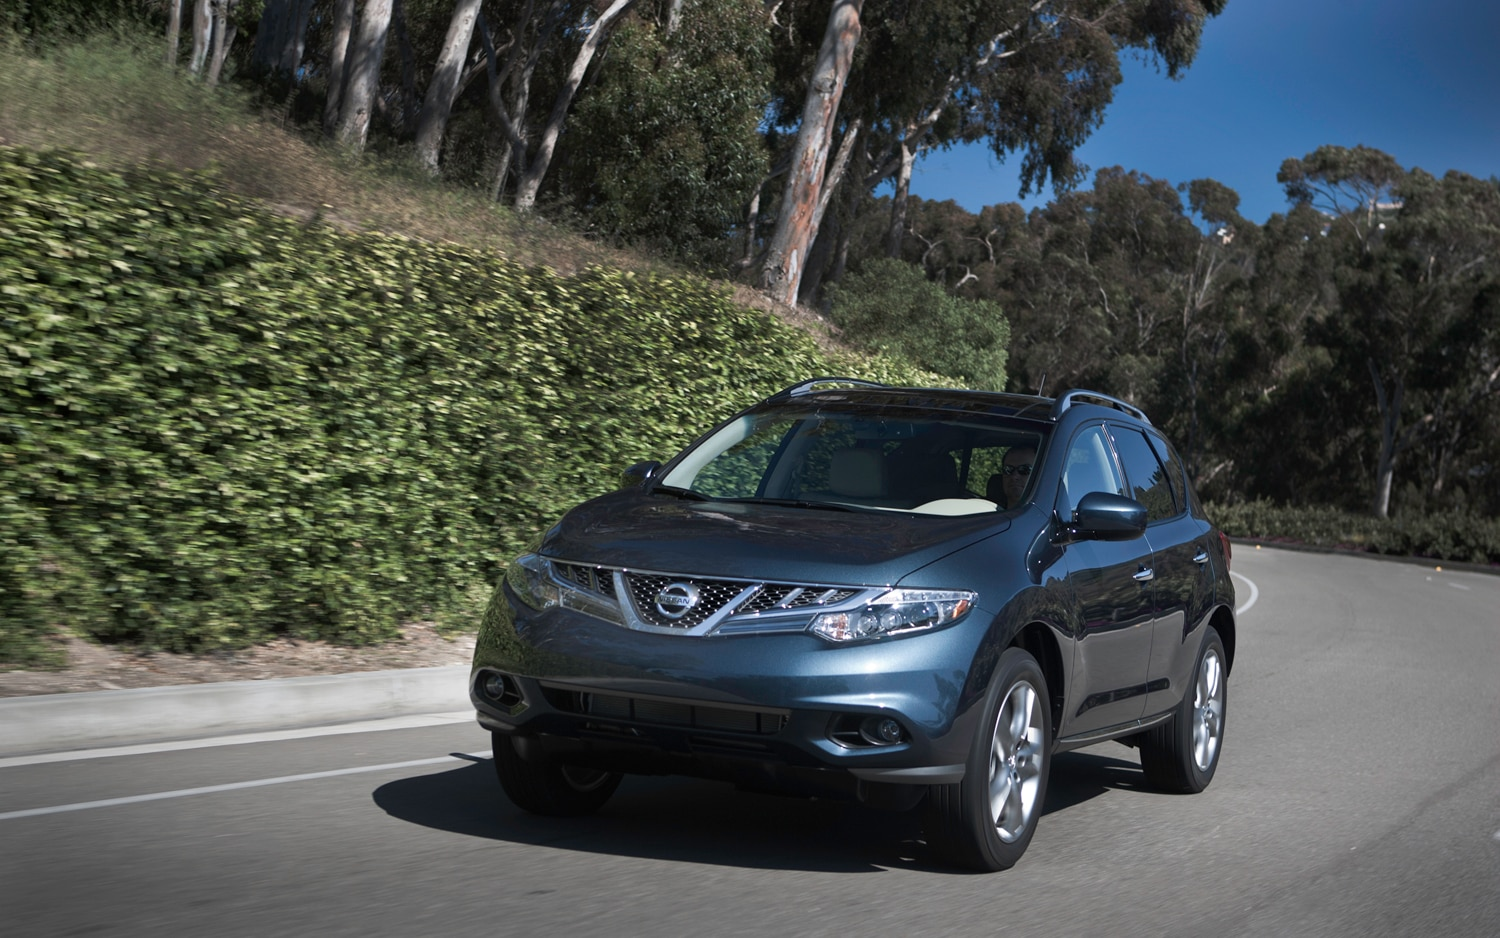 2011 nissan murano sl awd editors 39 notebook automobile. Black Bedroom Furniture Sets. Home Design Ideas